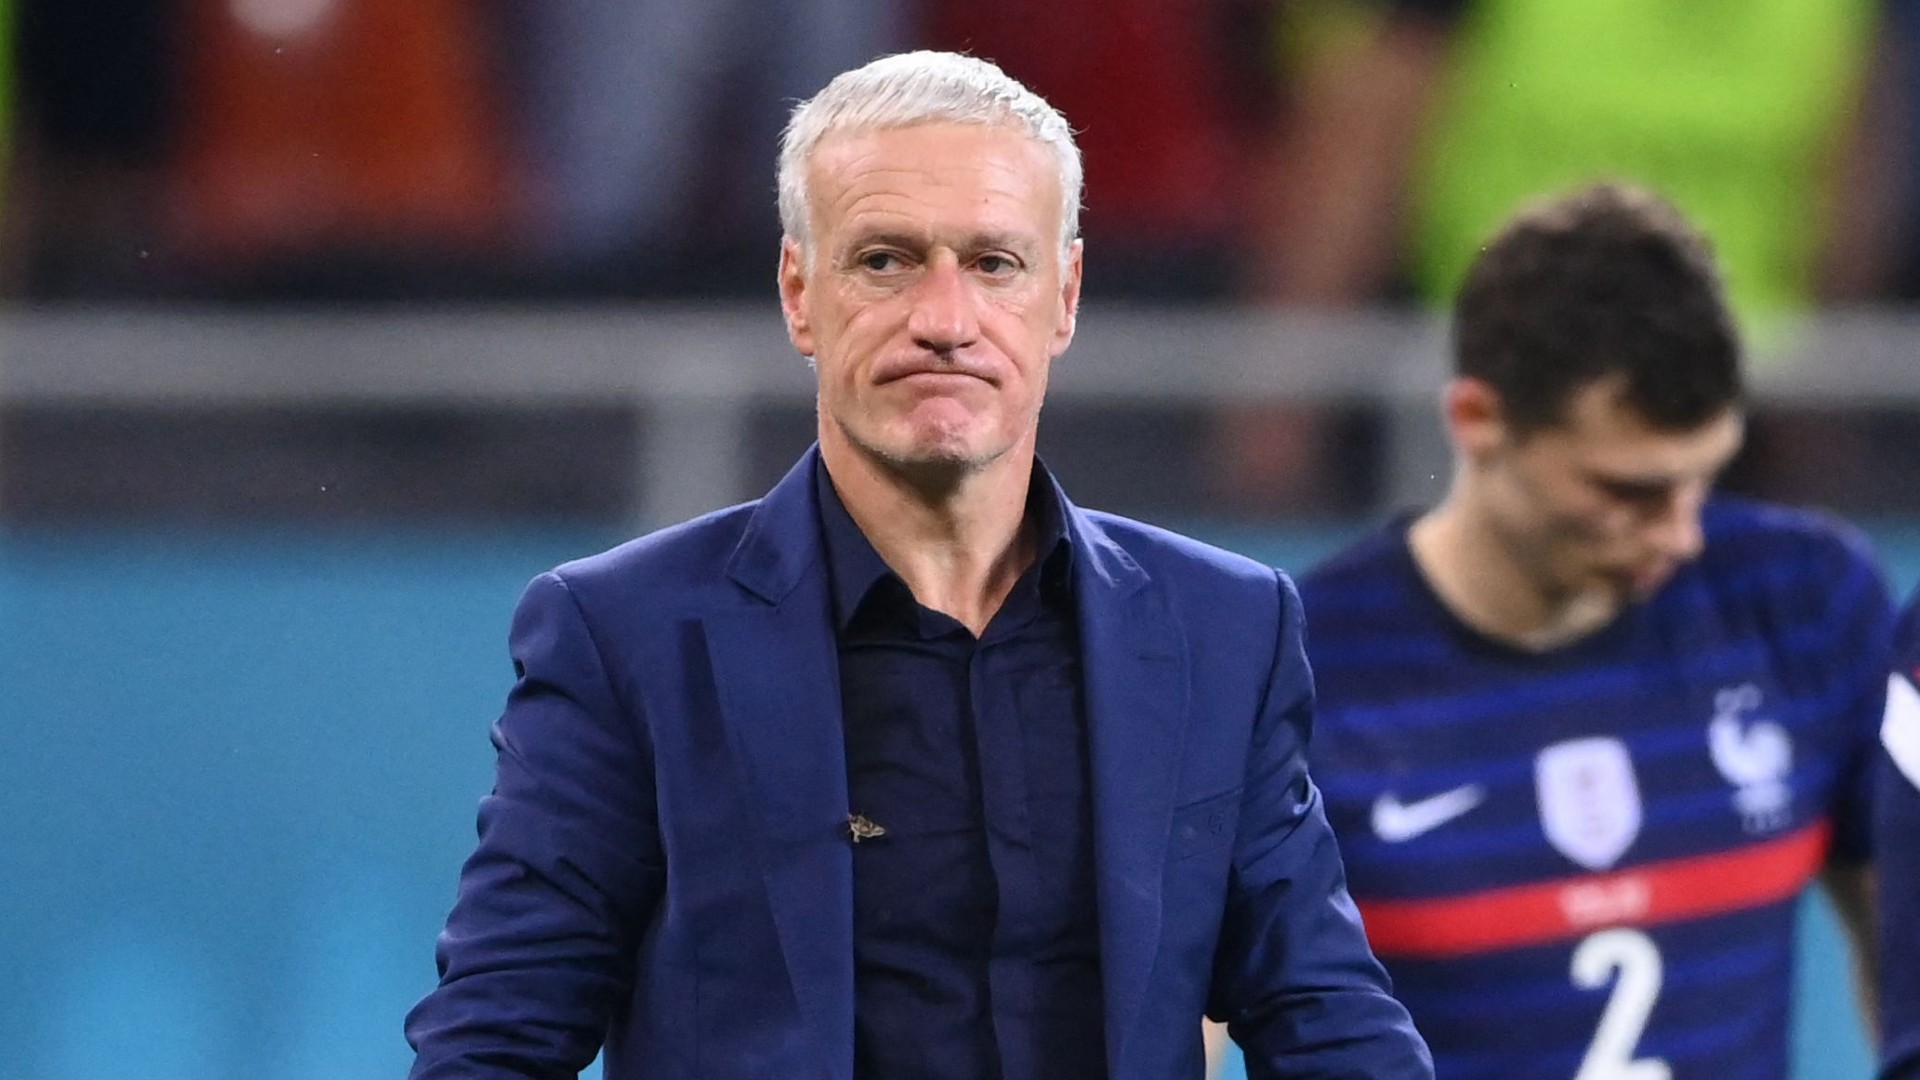 Deschamps takes the blame for France's Euro 2020 failure following capitulation against Switzerland